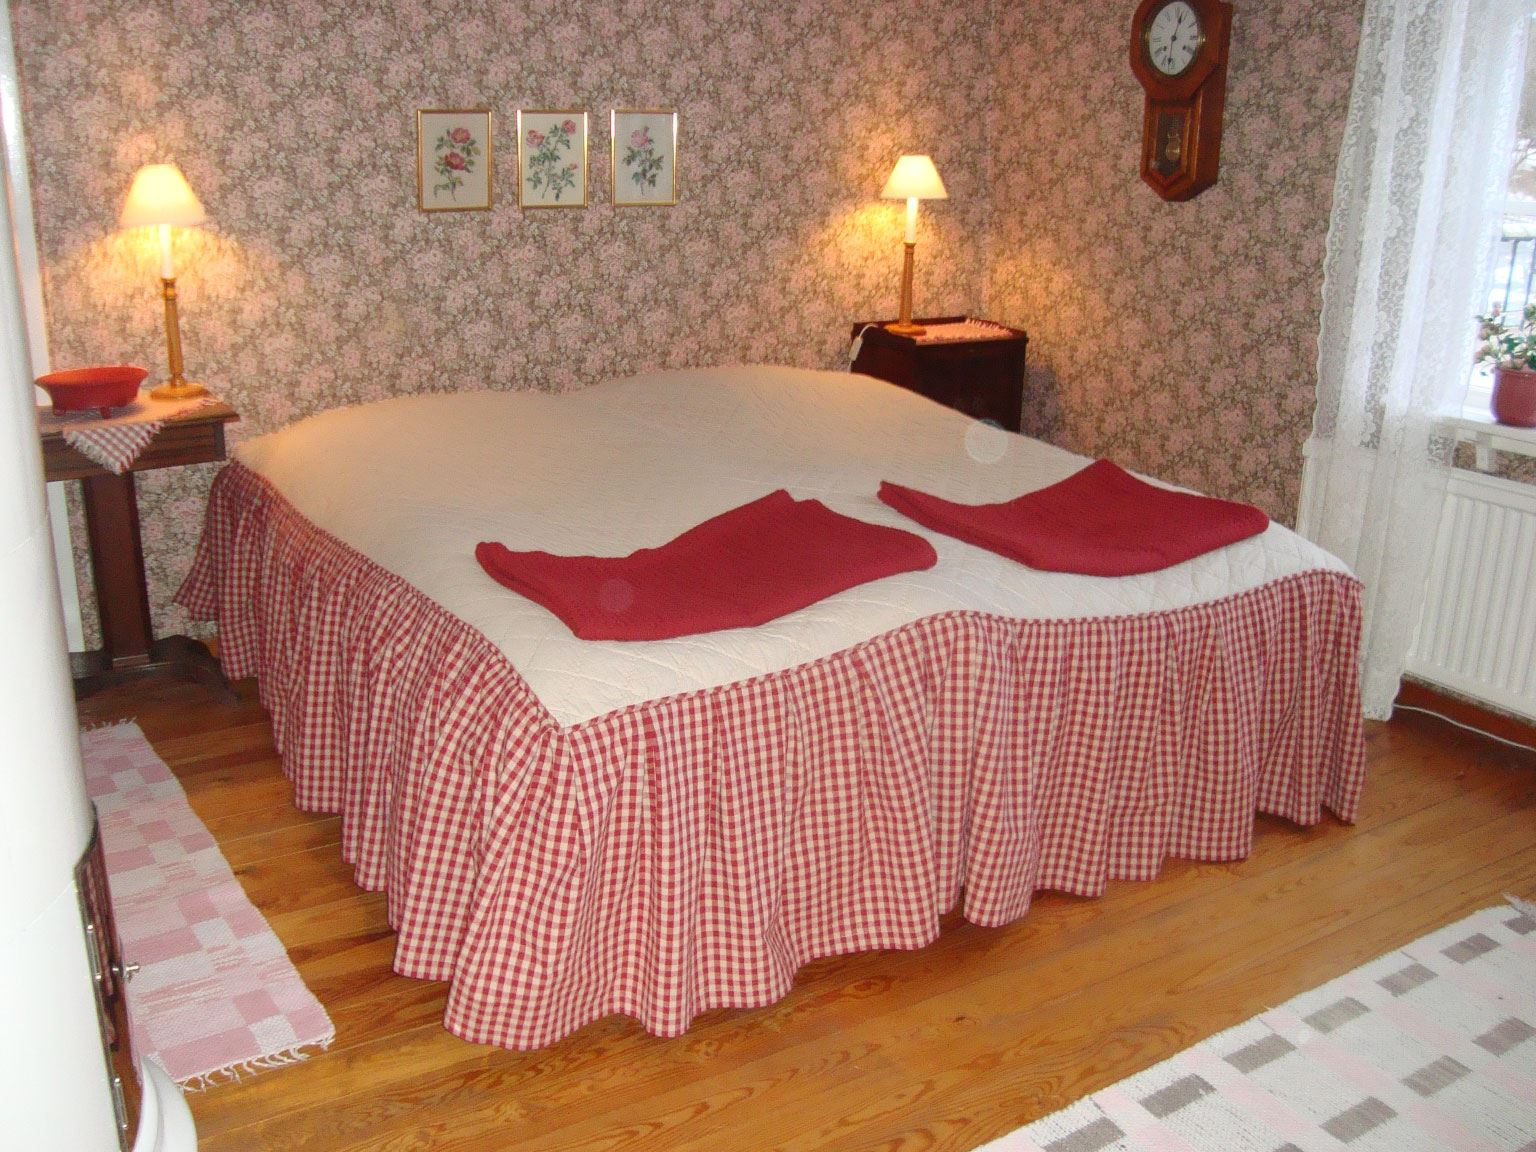 © Bed & Breakfast i Farstorp, Dubbelrum